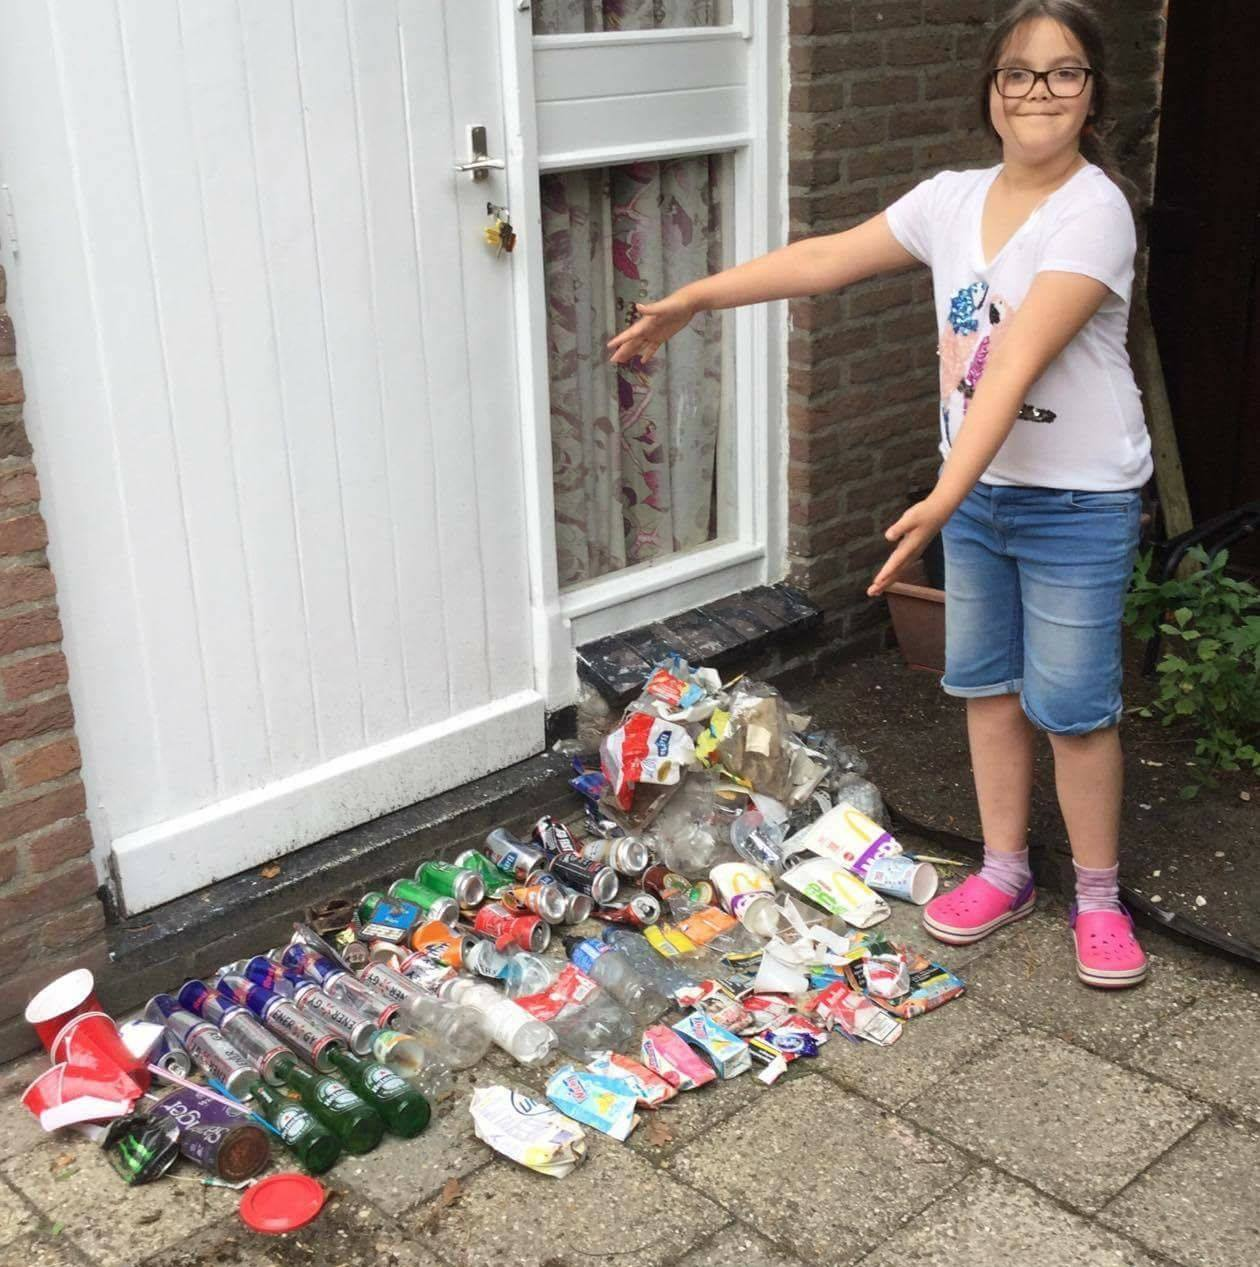 9 year old Lilly shows off her collection from a recent cleanup.